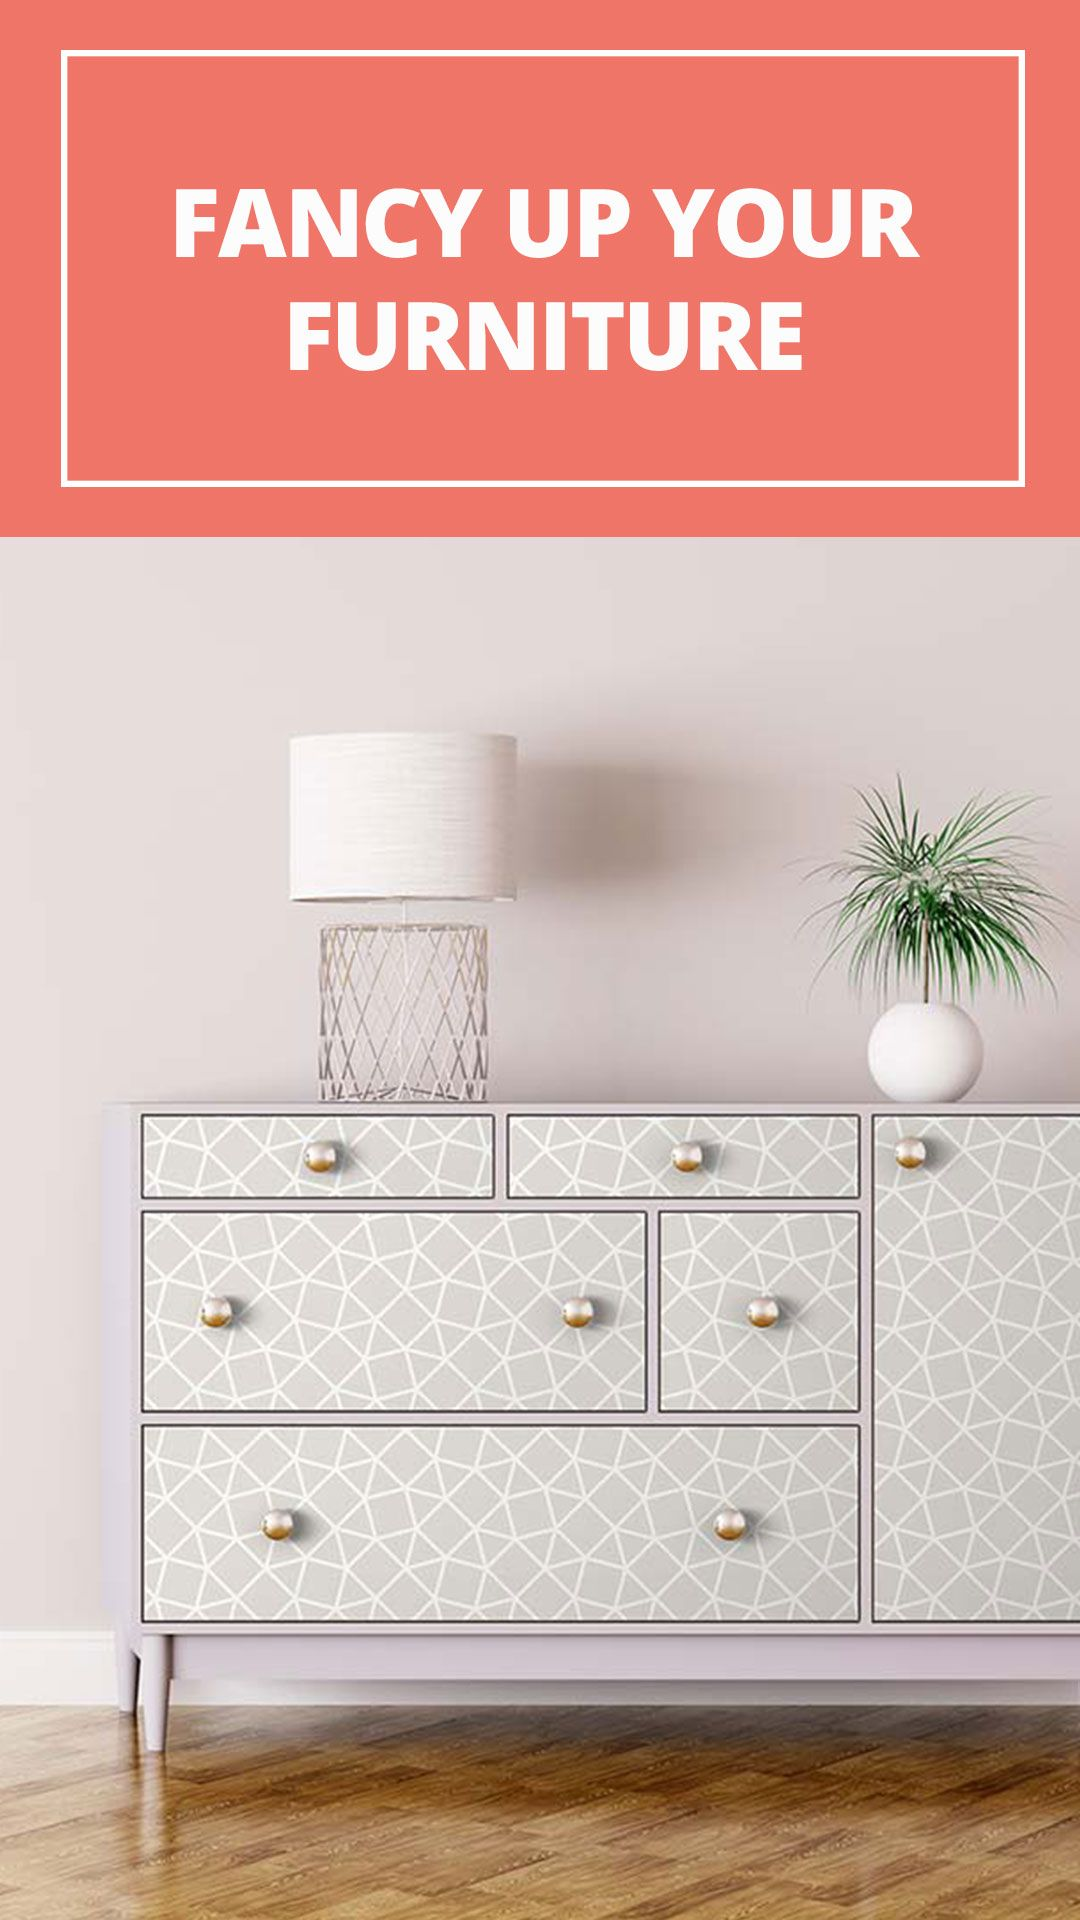 Beyond The Wall 5 Creative Uses Of Peel And Stick Wallpaper Quick Diy Furniture Furniture Peel And Stick Wallpaper